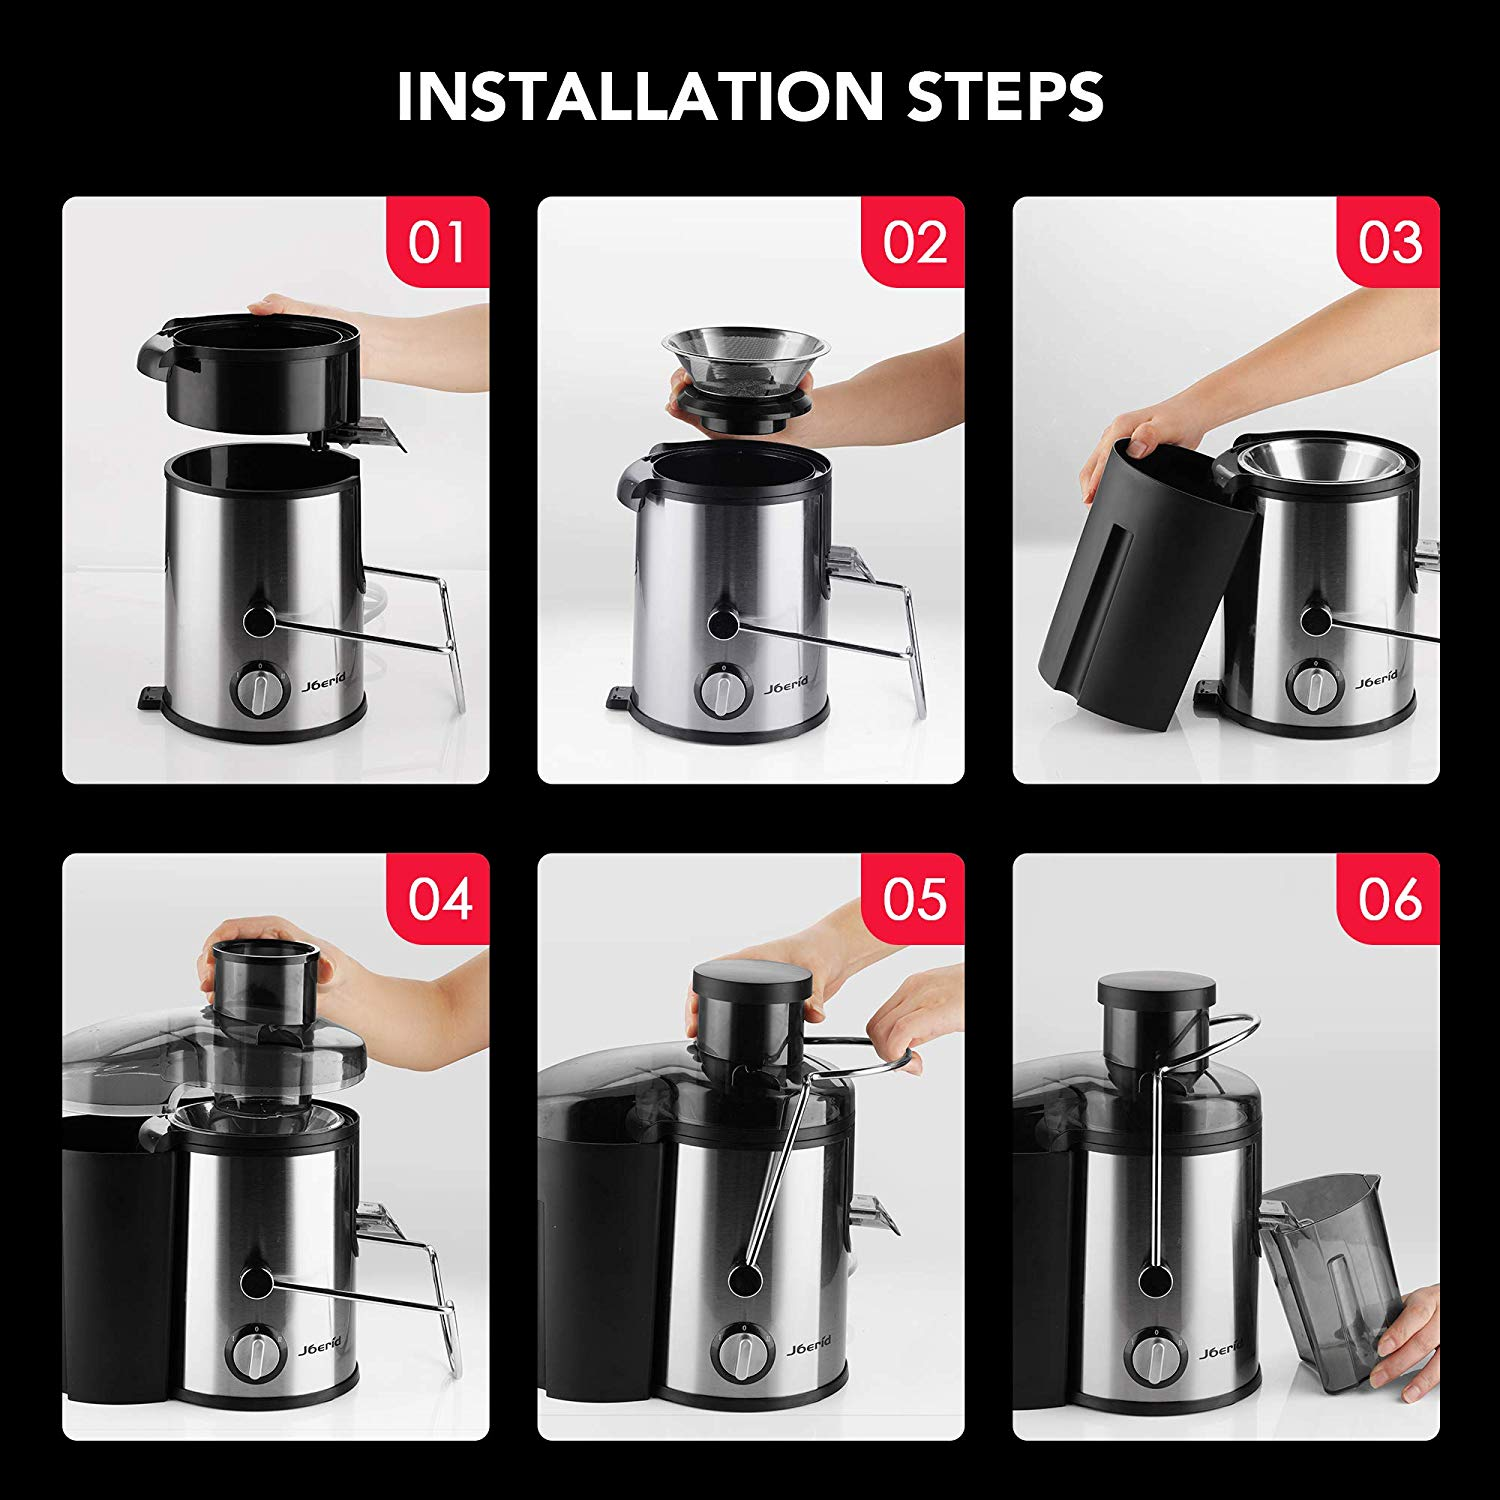 Juicer Machines, [2020 Upgrade] Joerid Centrifugal Juicer, Juice Extractor with Spout Adjustable, Lighter & Powerful, Easy to Clean & BPA Free,